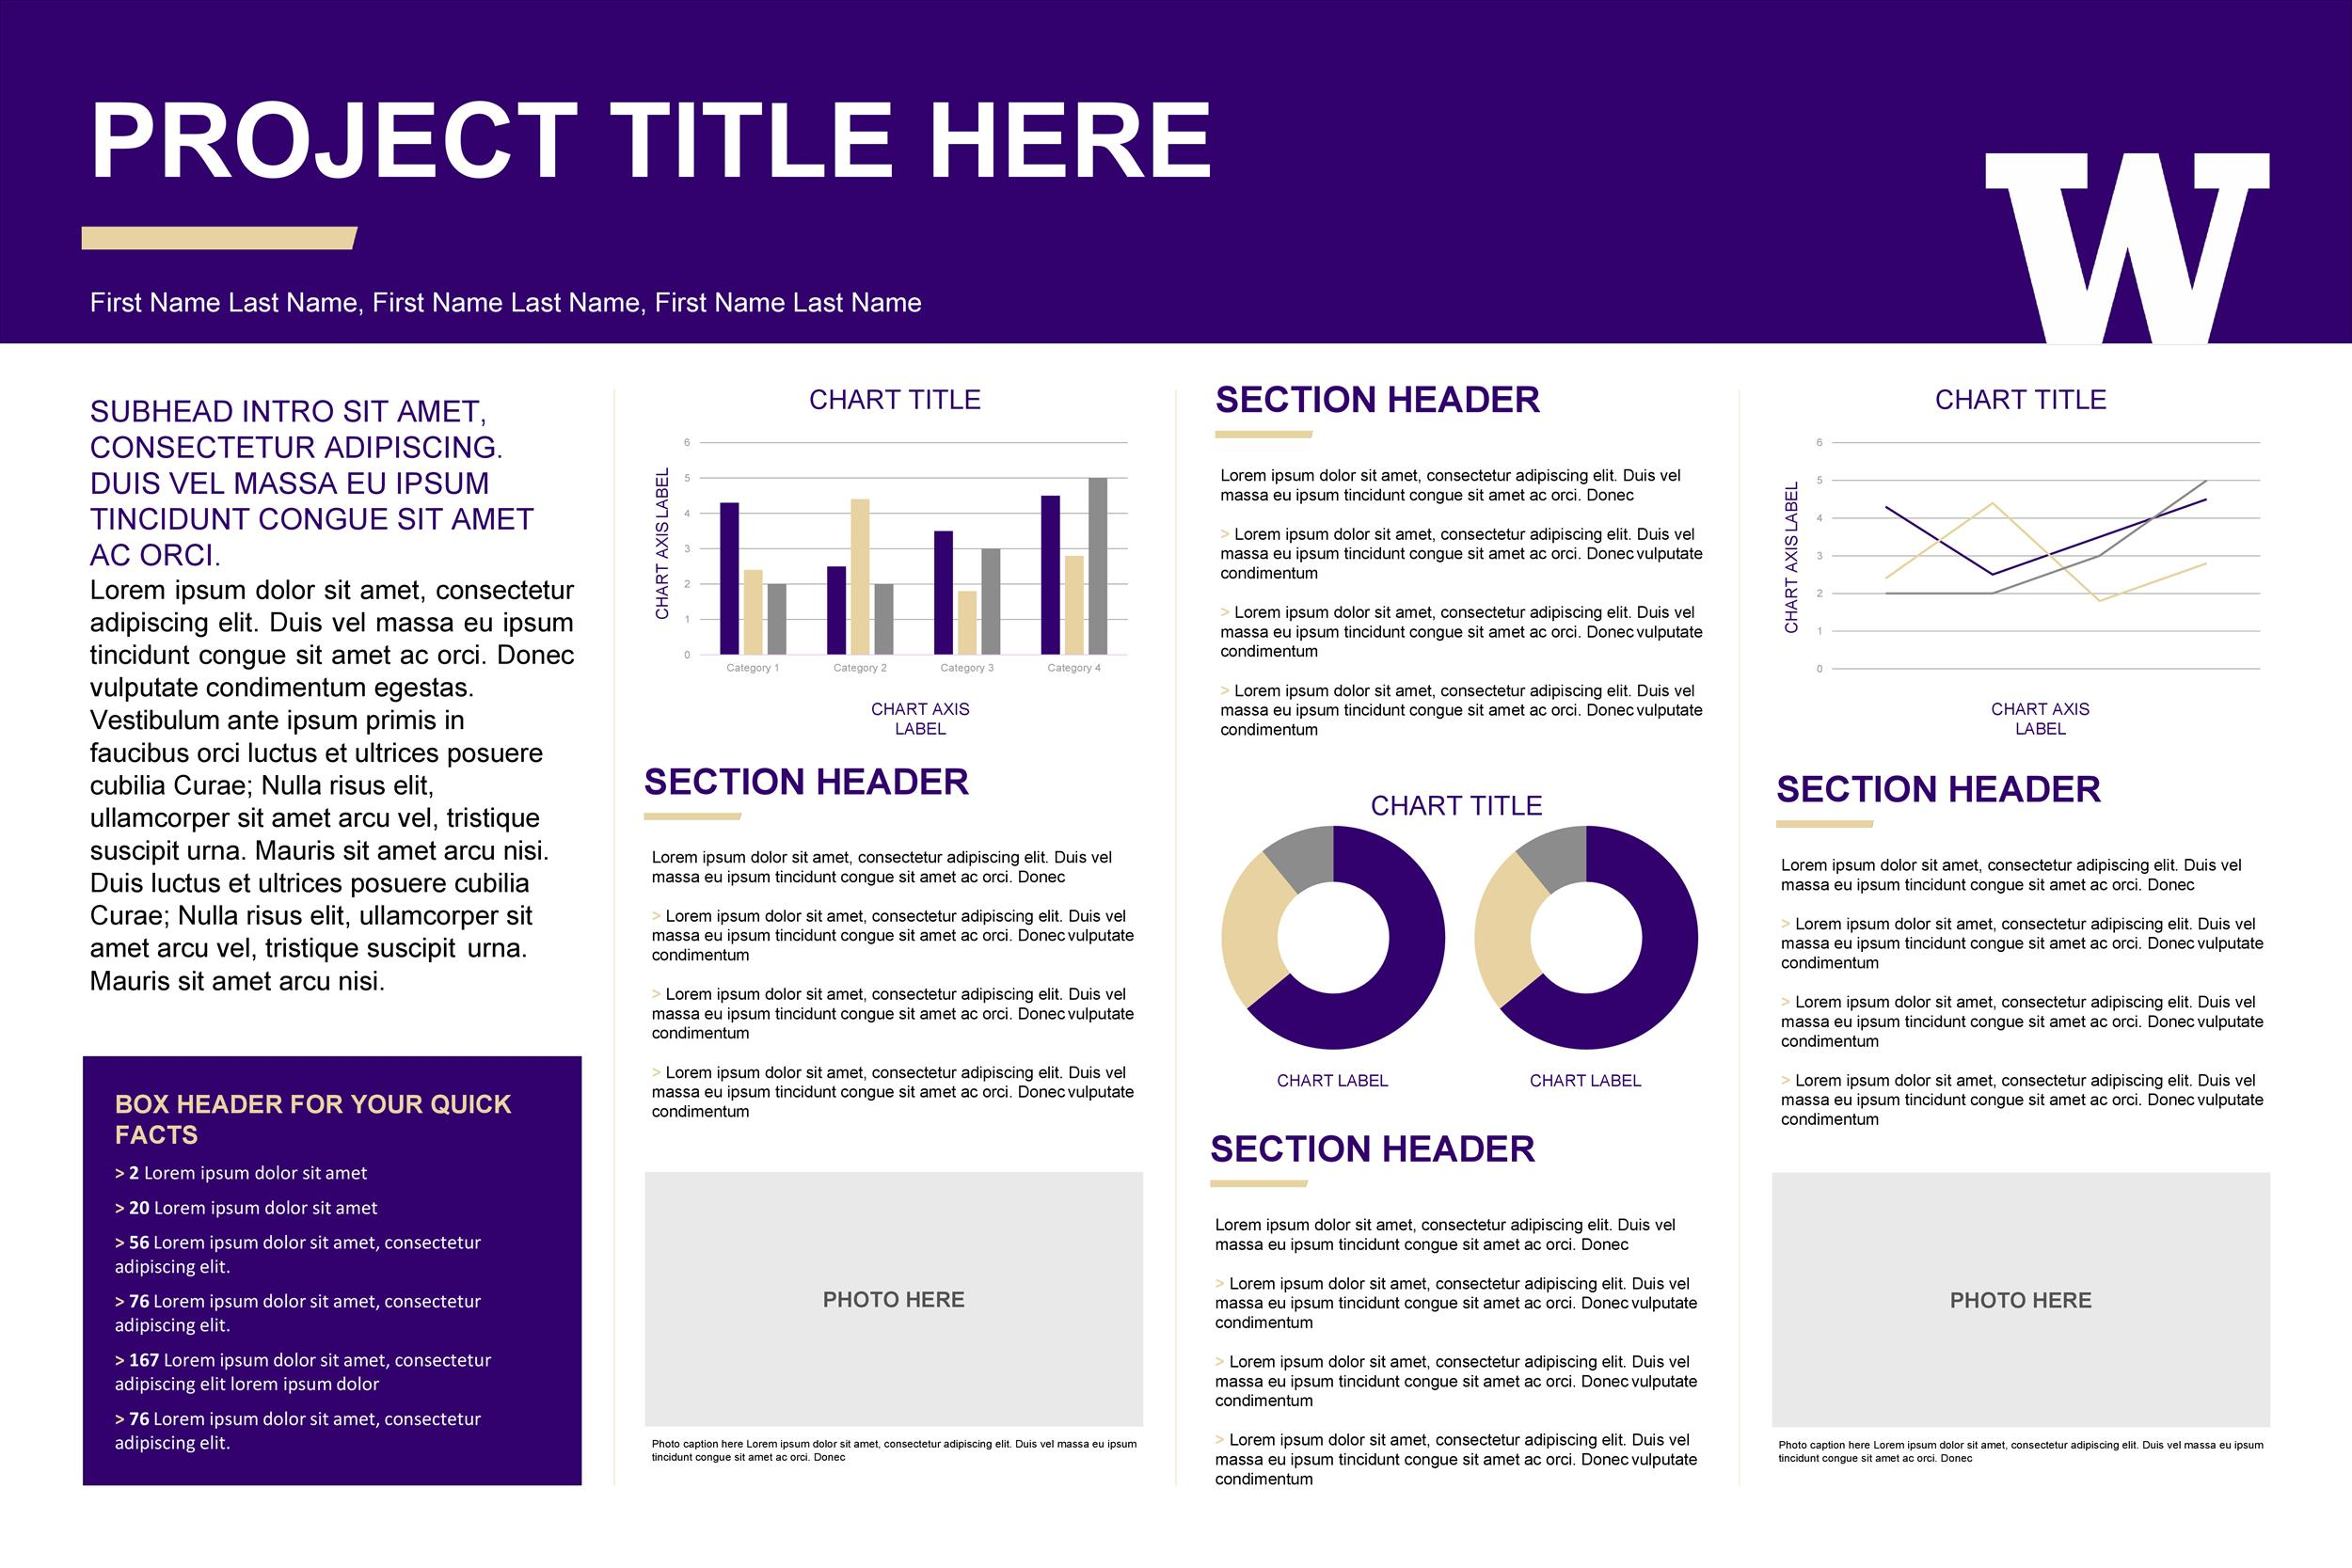 Free research poster template 05